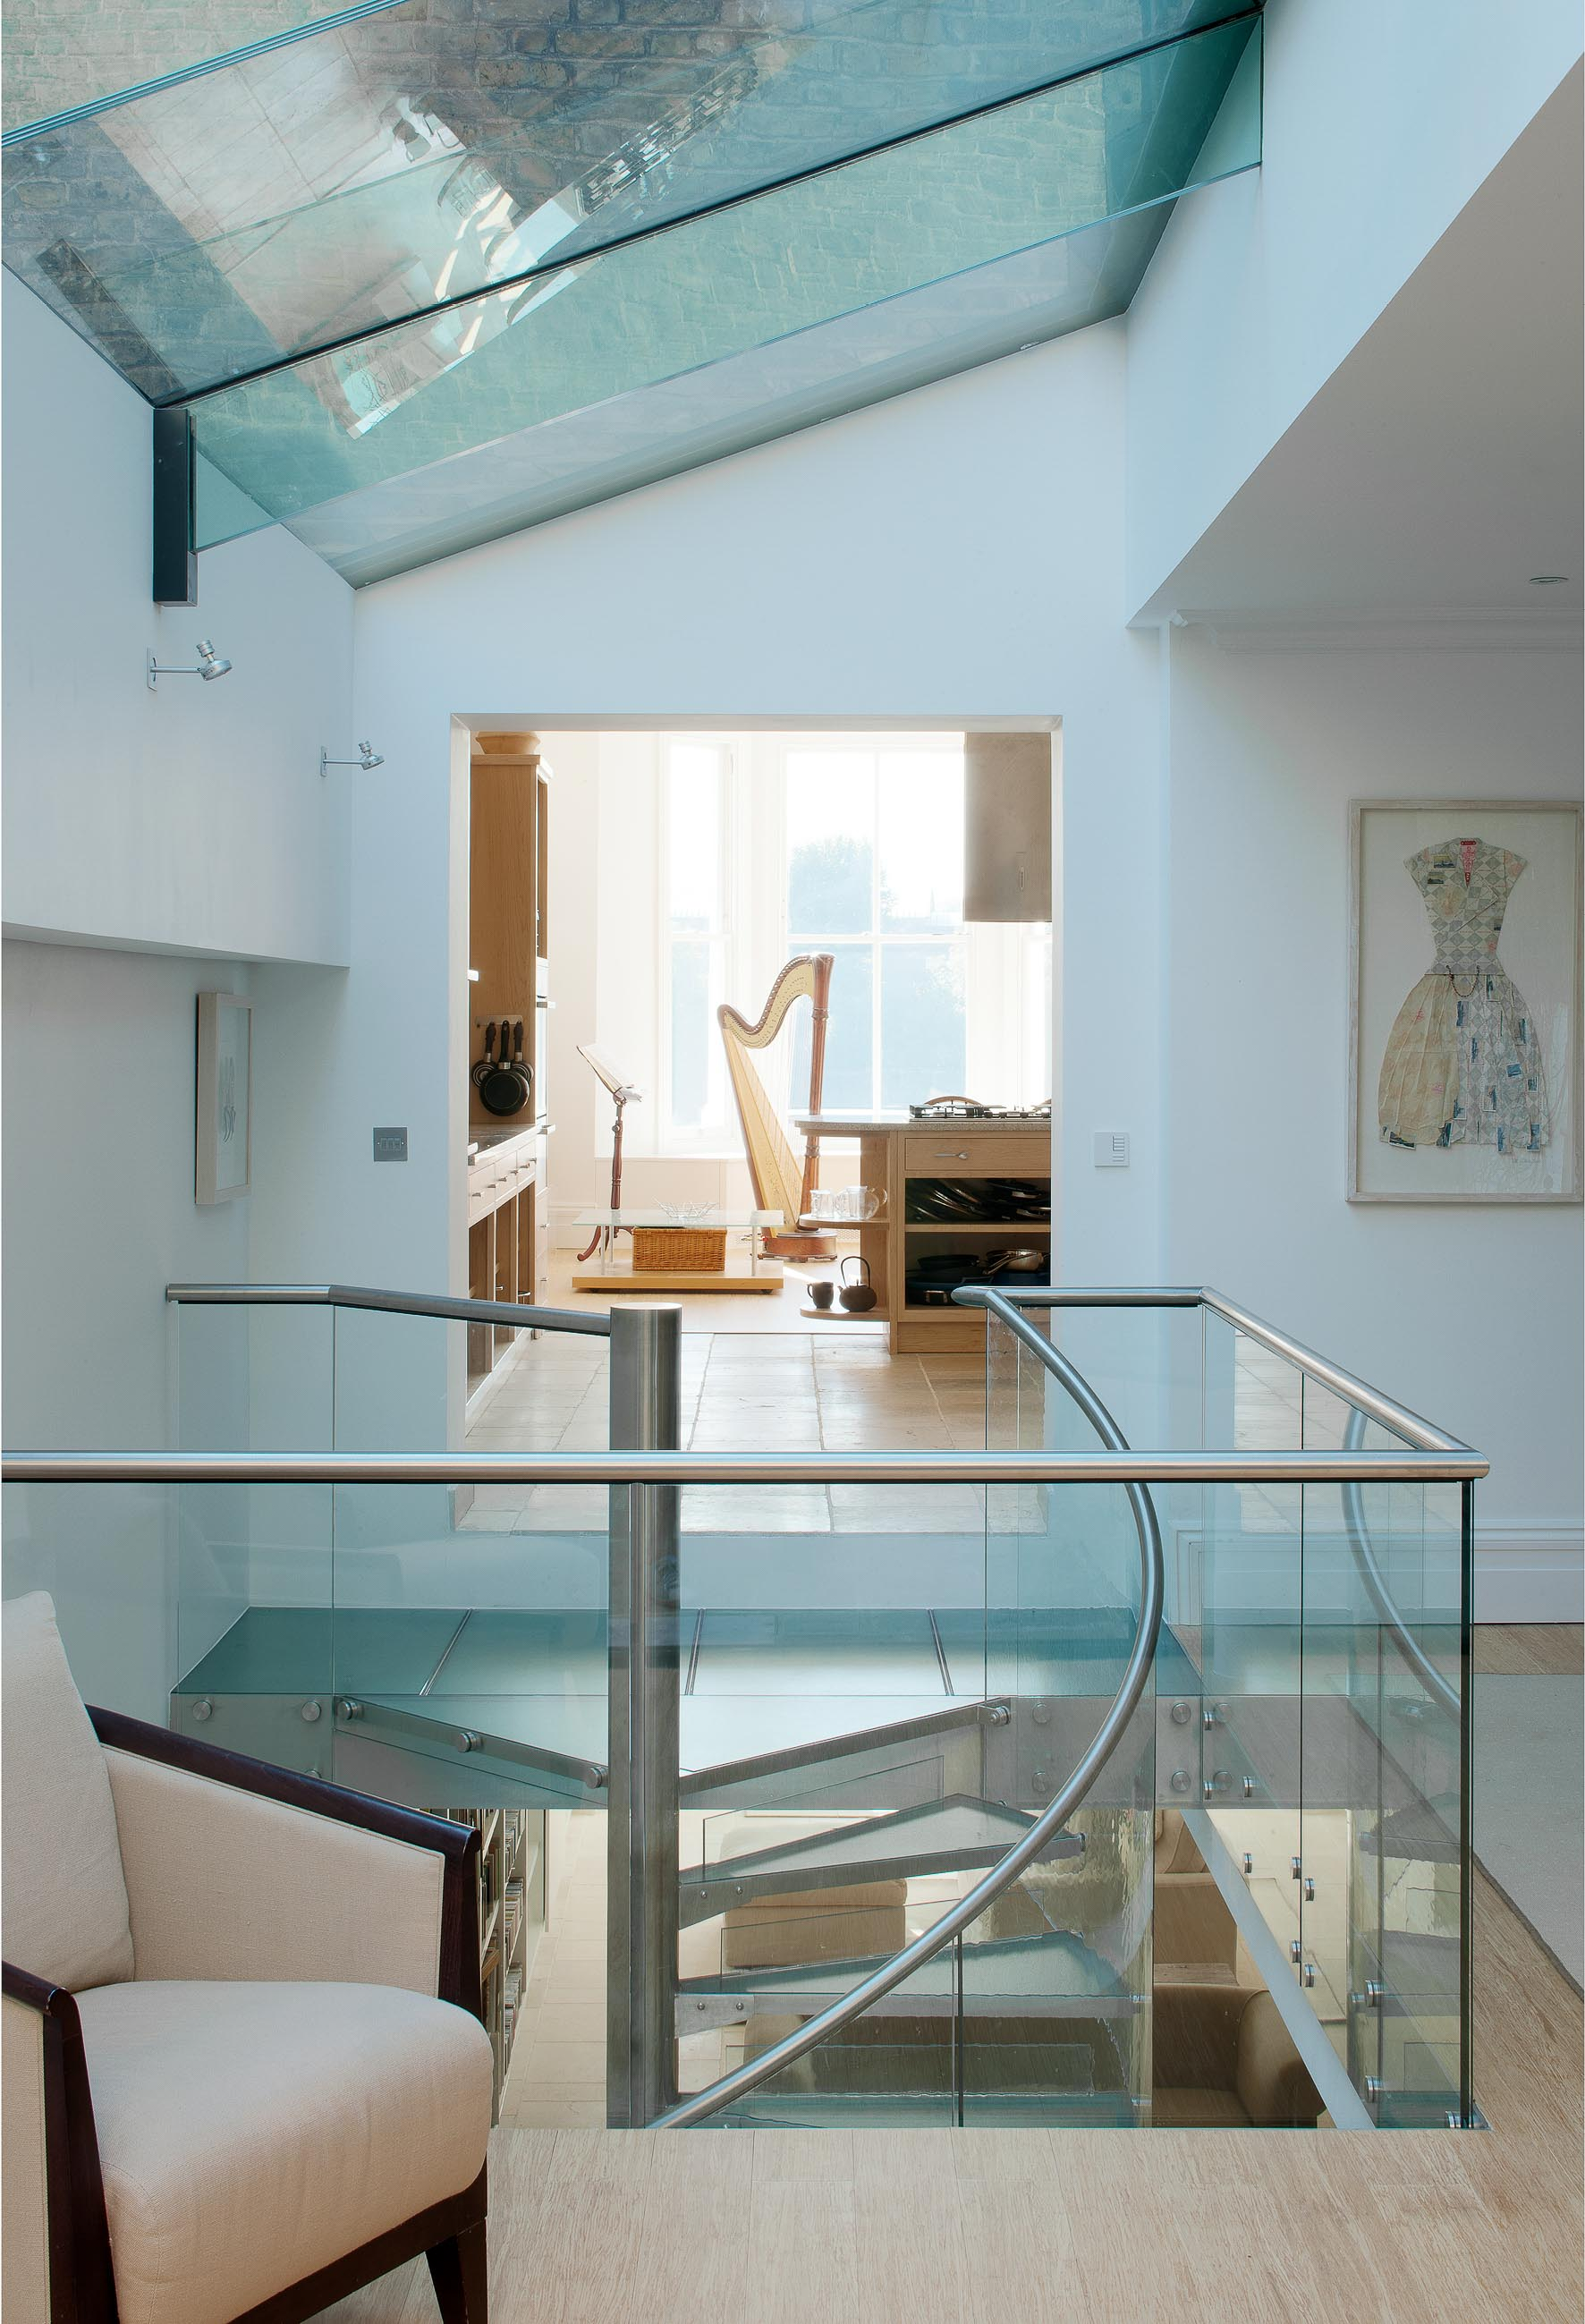 The ground floor with a featrue staircase linking the living and kitchen spaces